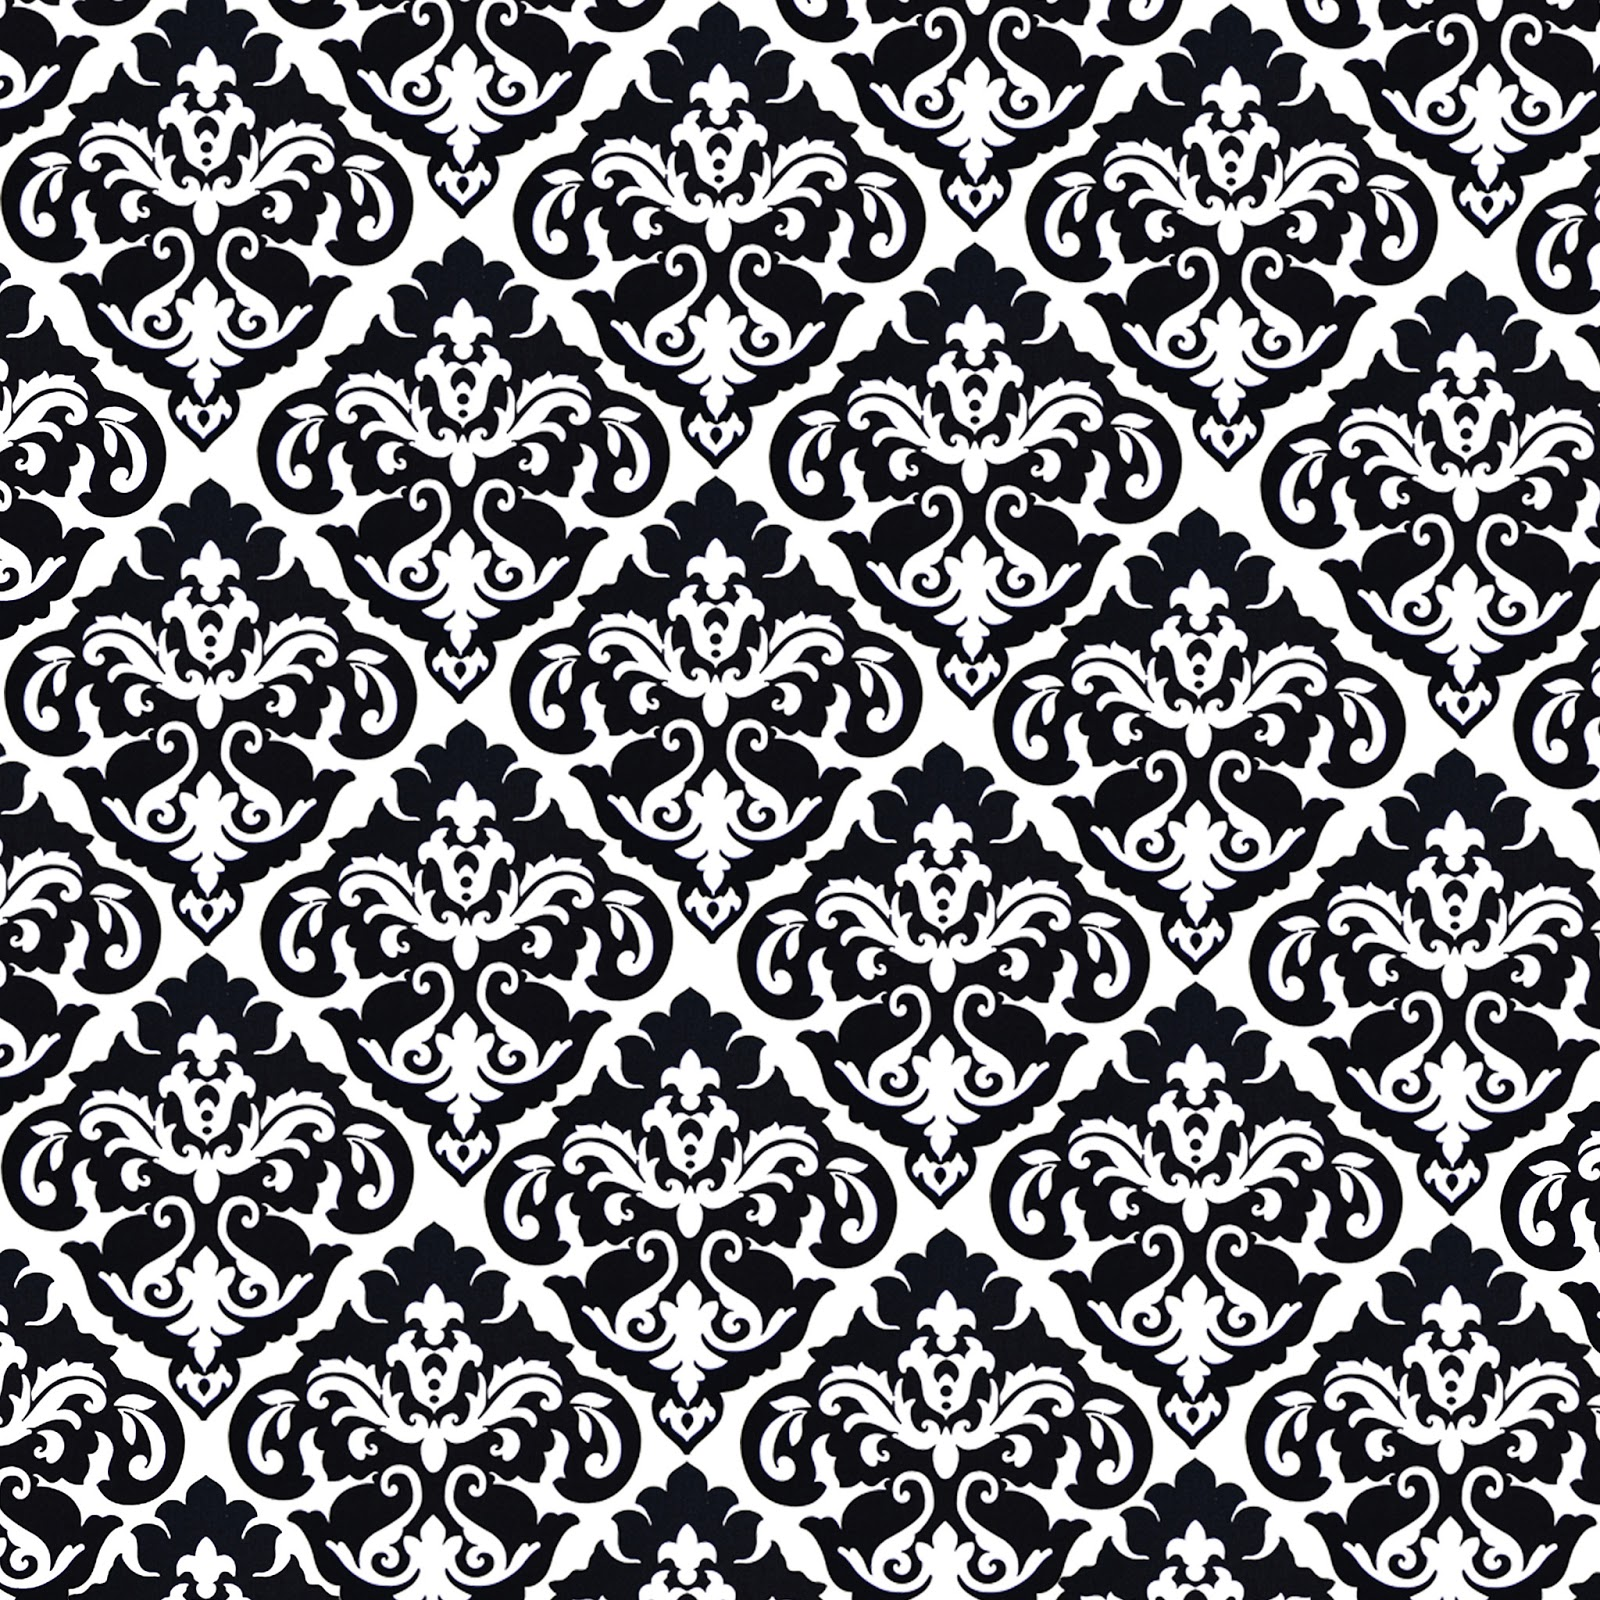 Pattern wallpaperawsome backgrounds wallpapers black and white vintage